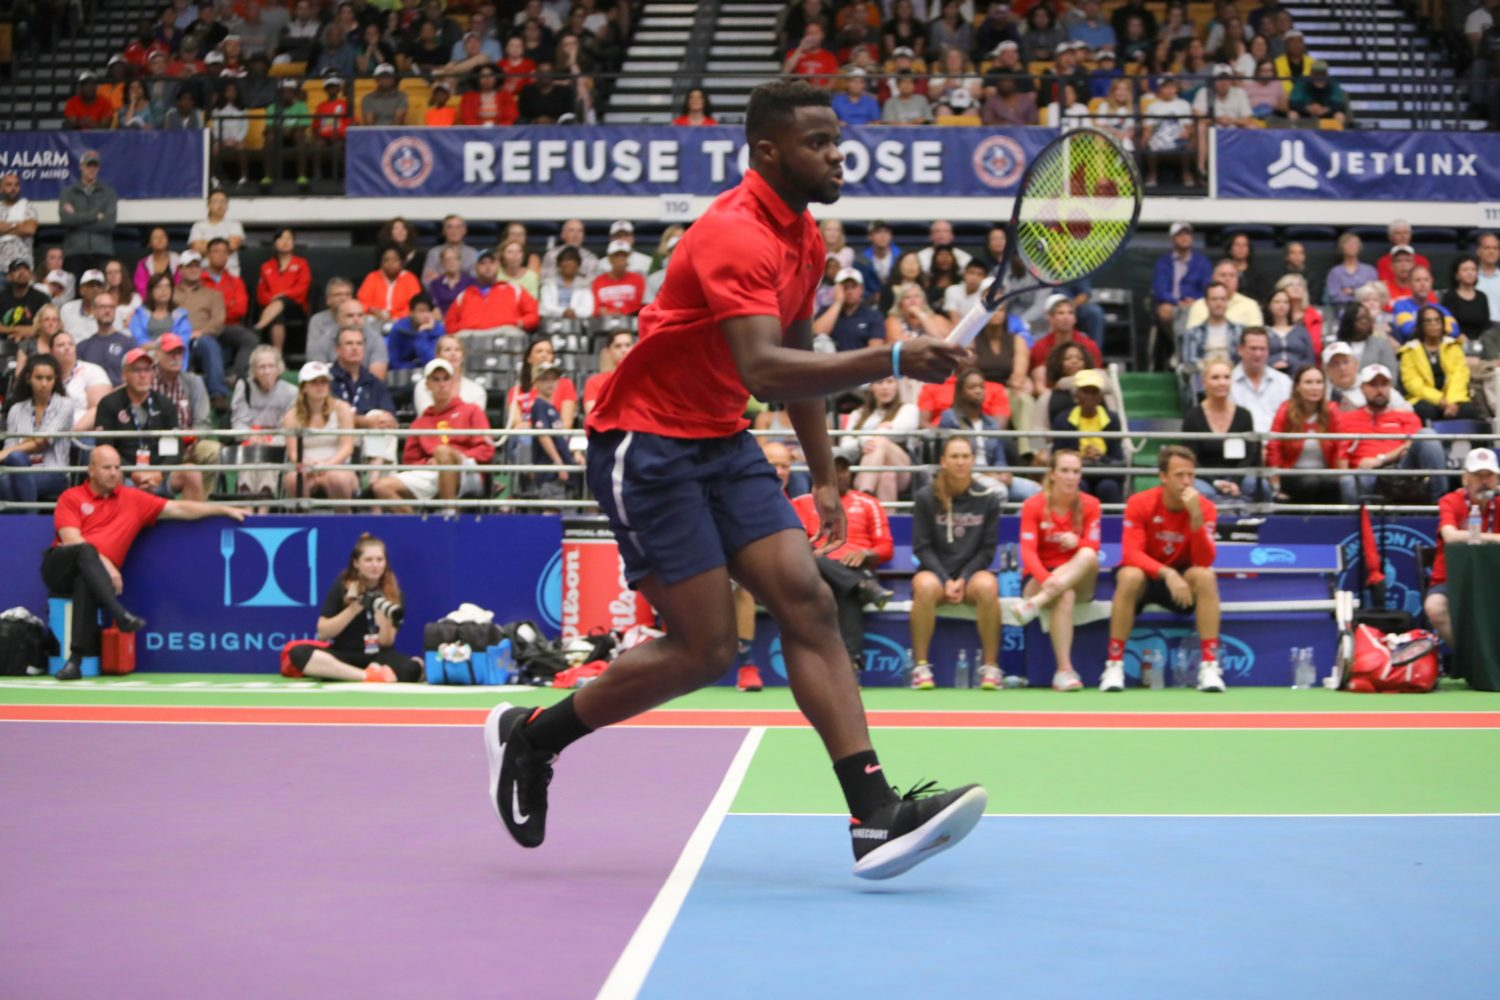 DC's pro tennis team, the Washington Kastles, are playing the opening game of the season at their new stadium in Union Market. Photograph by Kevin Koski.